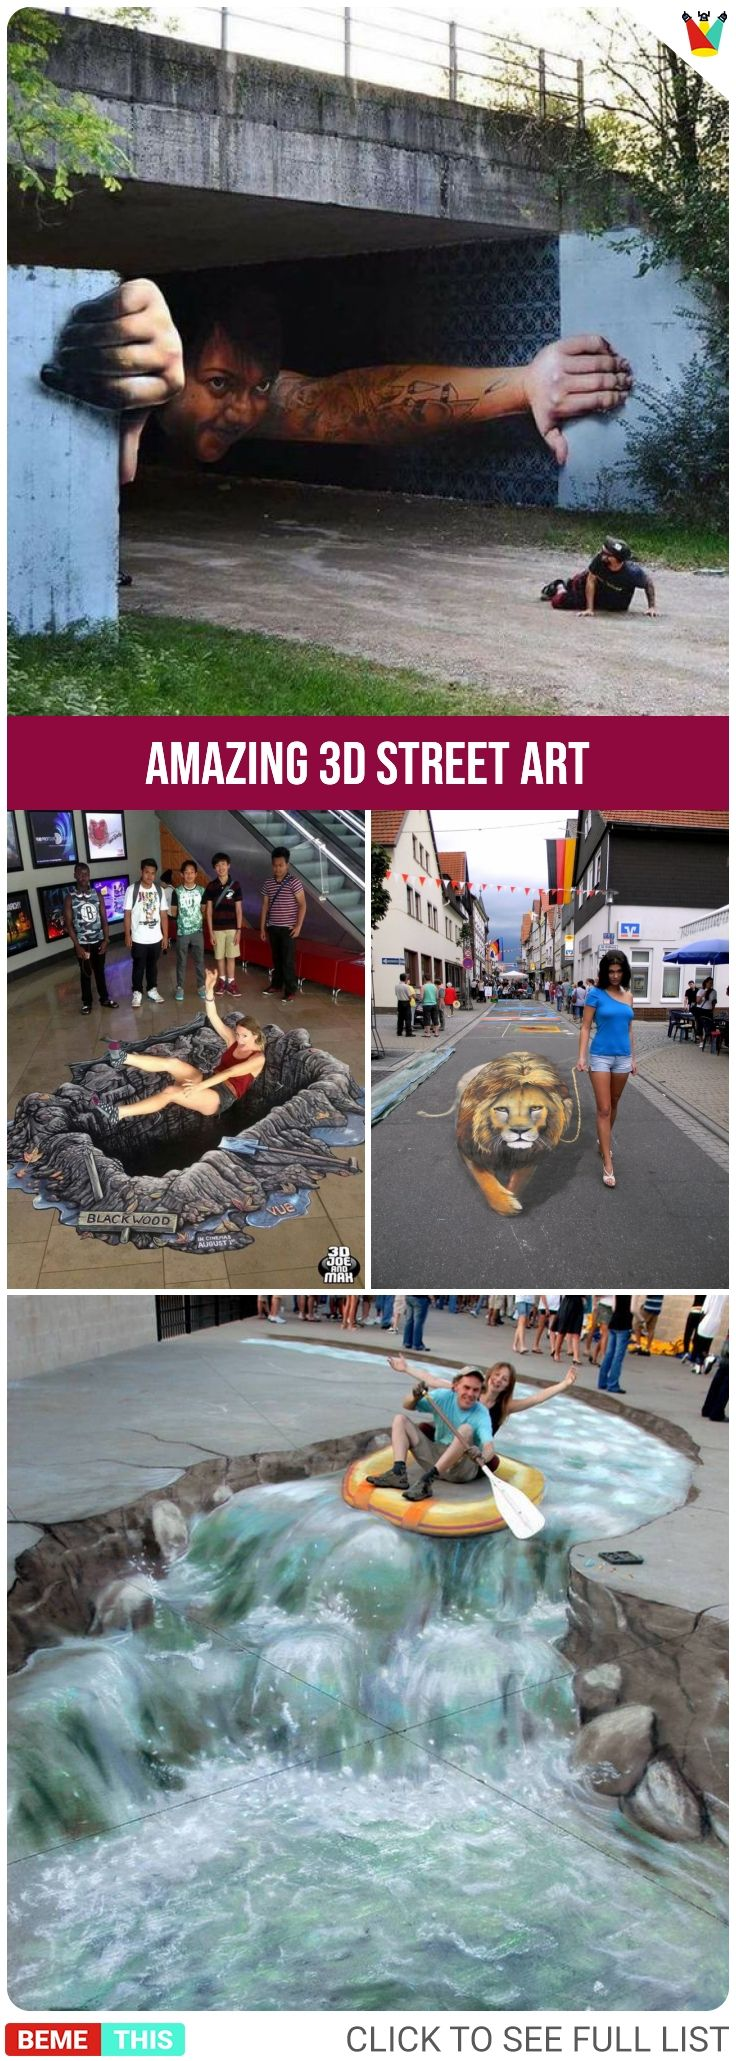 Amazing 3D Street Art That Will Blow Your Mind is part of Amazing D Street Art That Will Blow Your Mind Bemethis - Art is an expression of culture, emotions and life itself  Different artists have expressed themselves in various styles over different ages and time periods  We've seen people paint with colors, we have seen people paint with mud, we have seen people express themselves in digital photography, and w